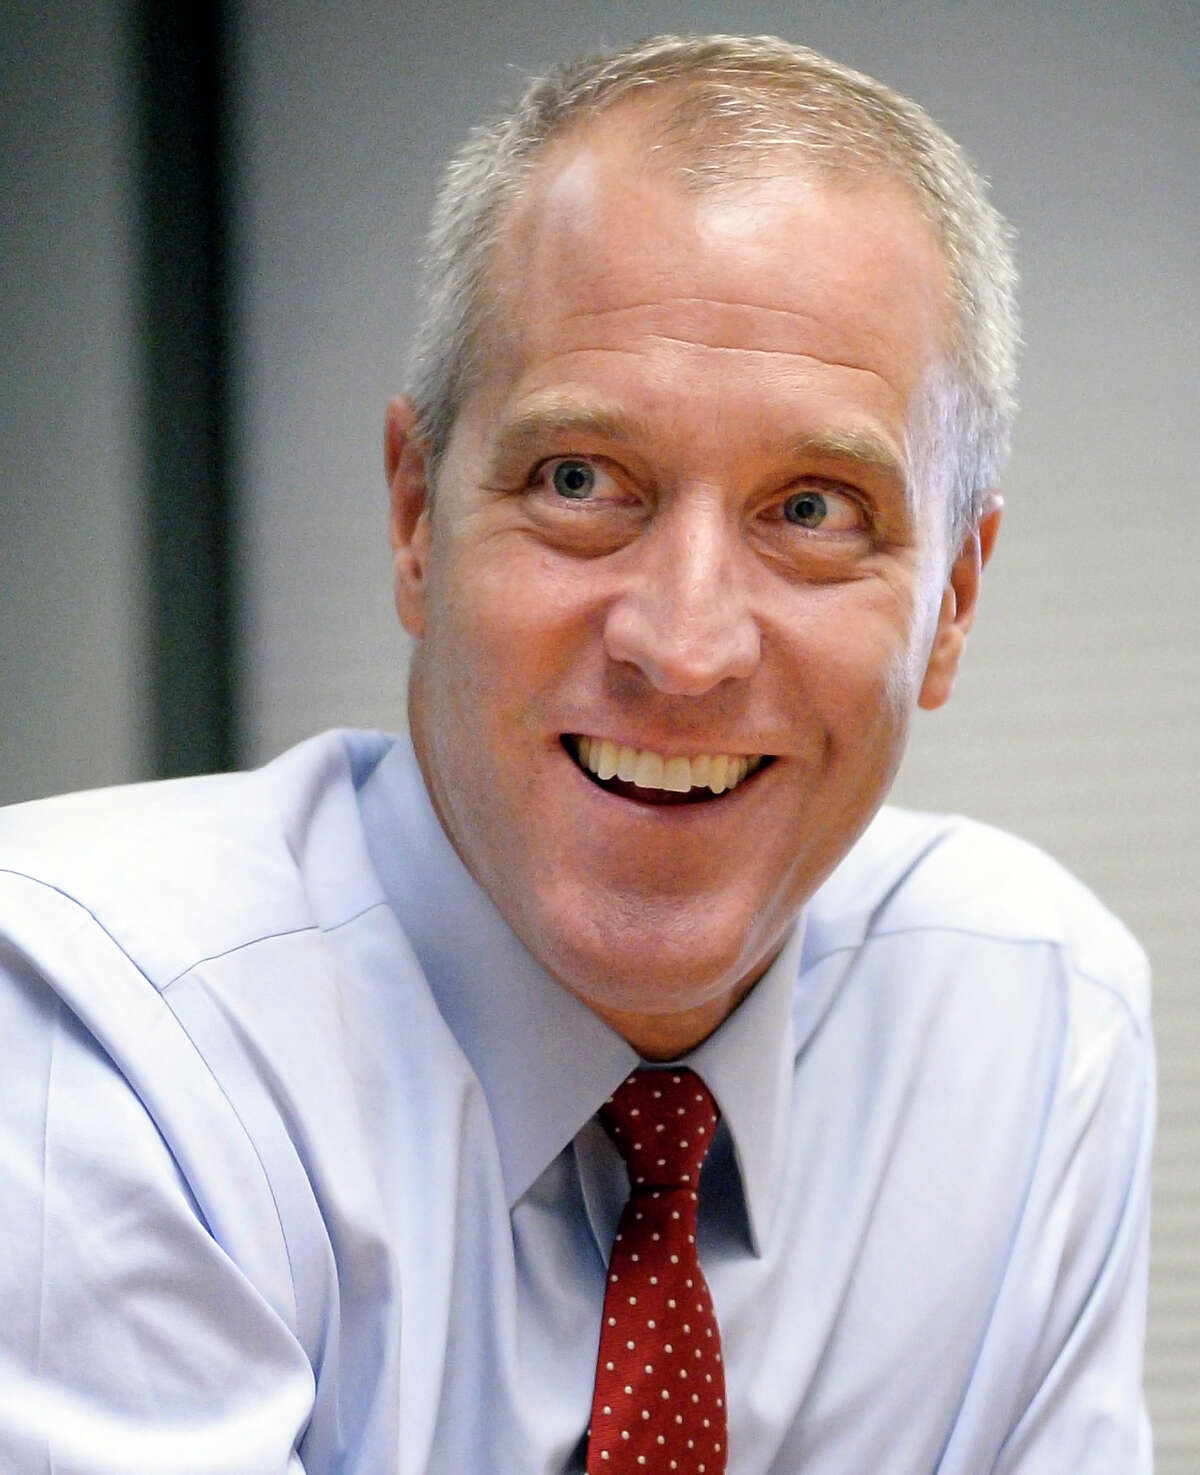 Democratic candidate for New York attorney general, U.S. Rep. Sean Patrick Maloney meets with the Times Union editorial board Thursday August 16, 2018 in Colonie, NY. (John Carl D'Annibale/Times Union)